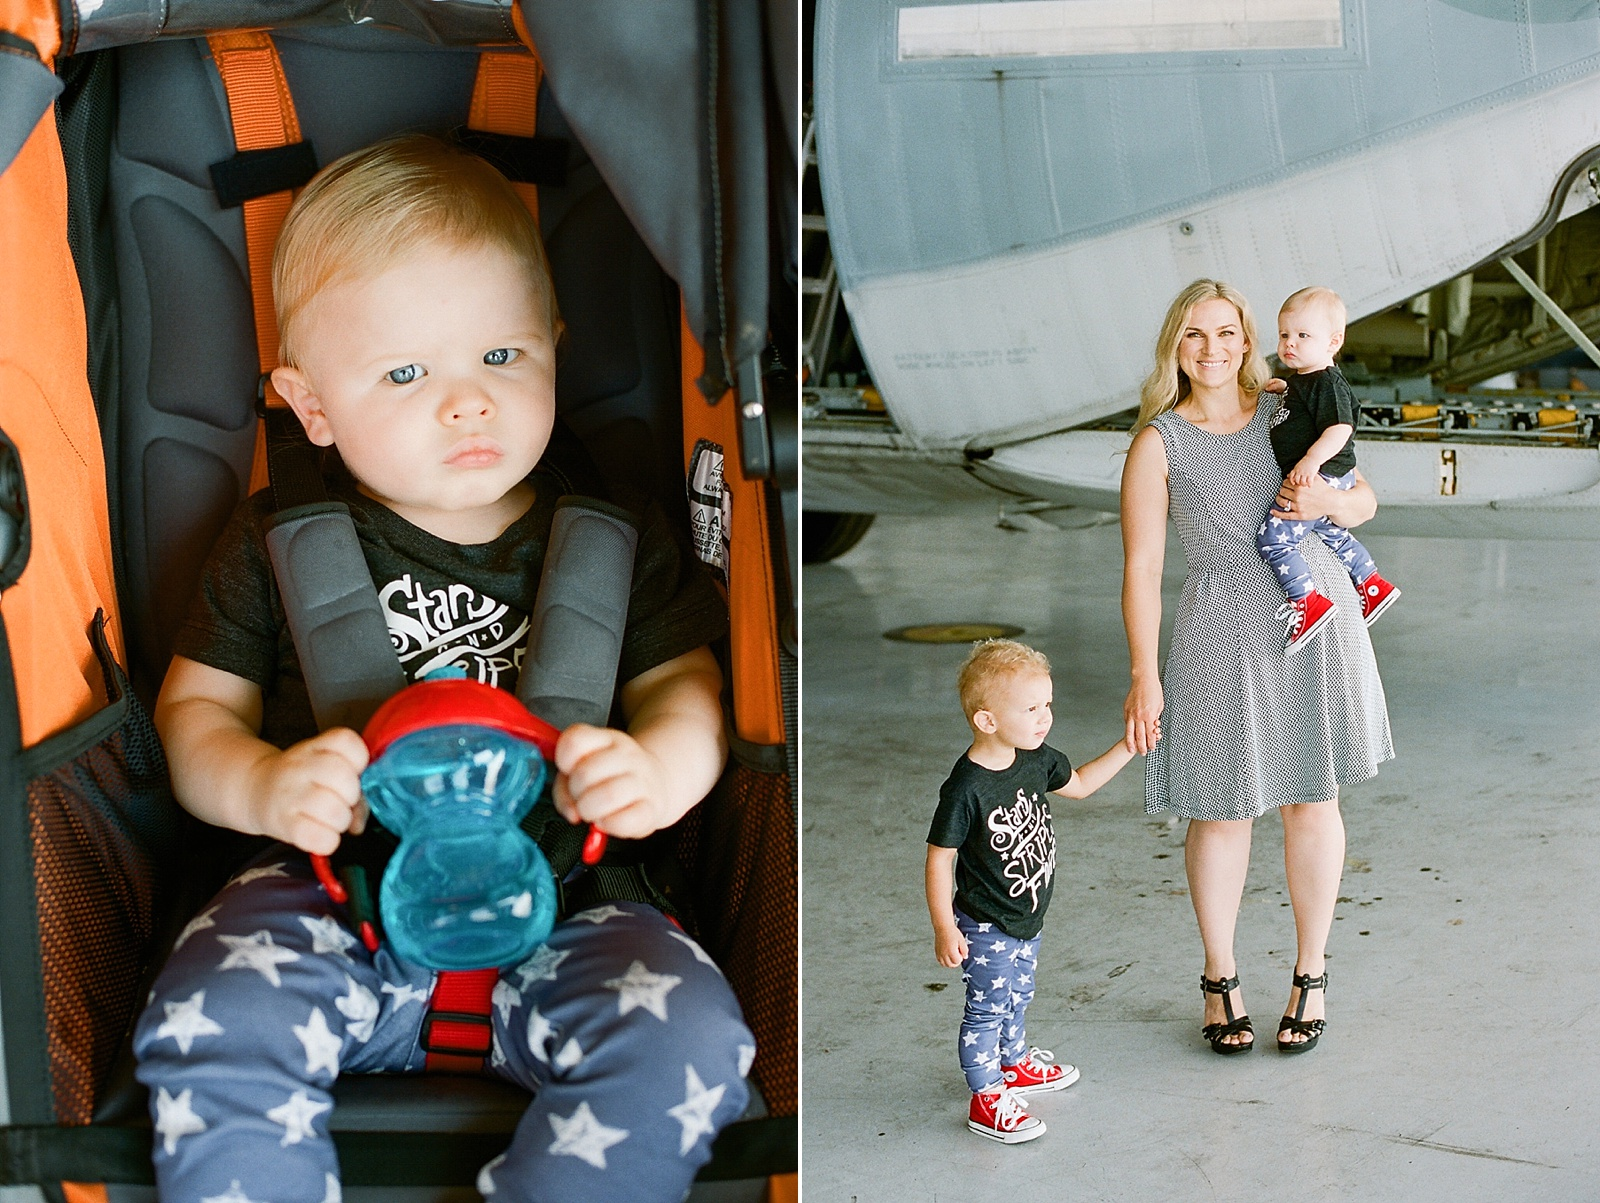 Marine Corps C130 Homecoming at MCAS Miramar from San Diego homecoming photographer Lauren Nygard